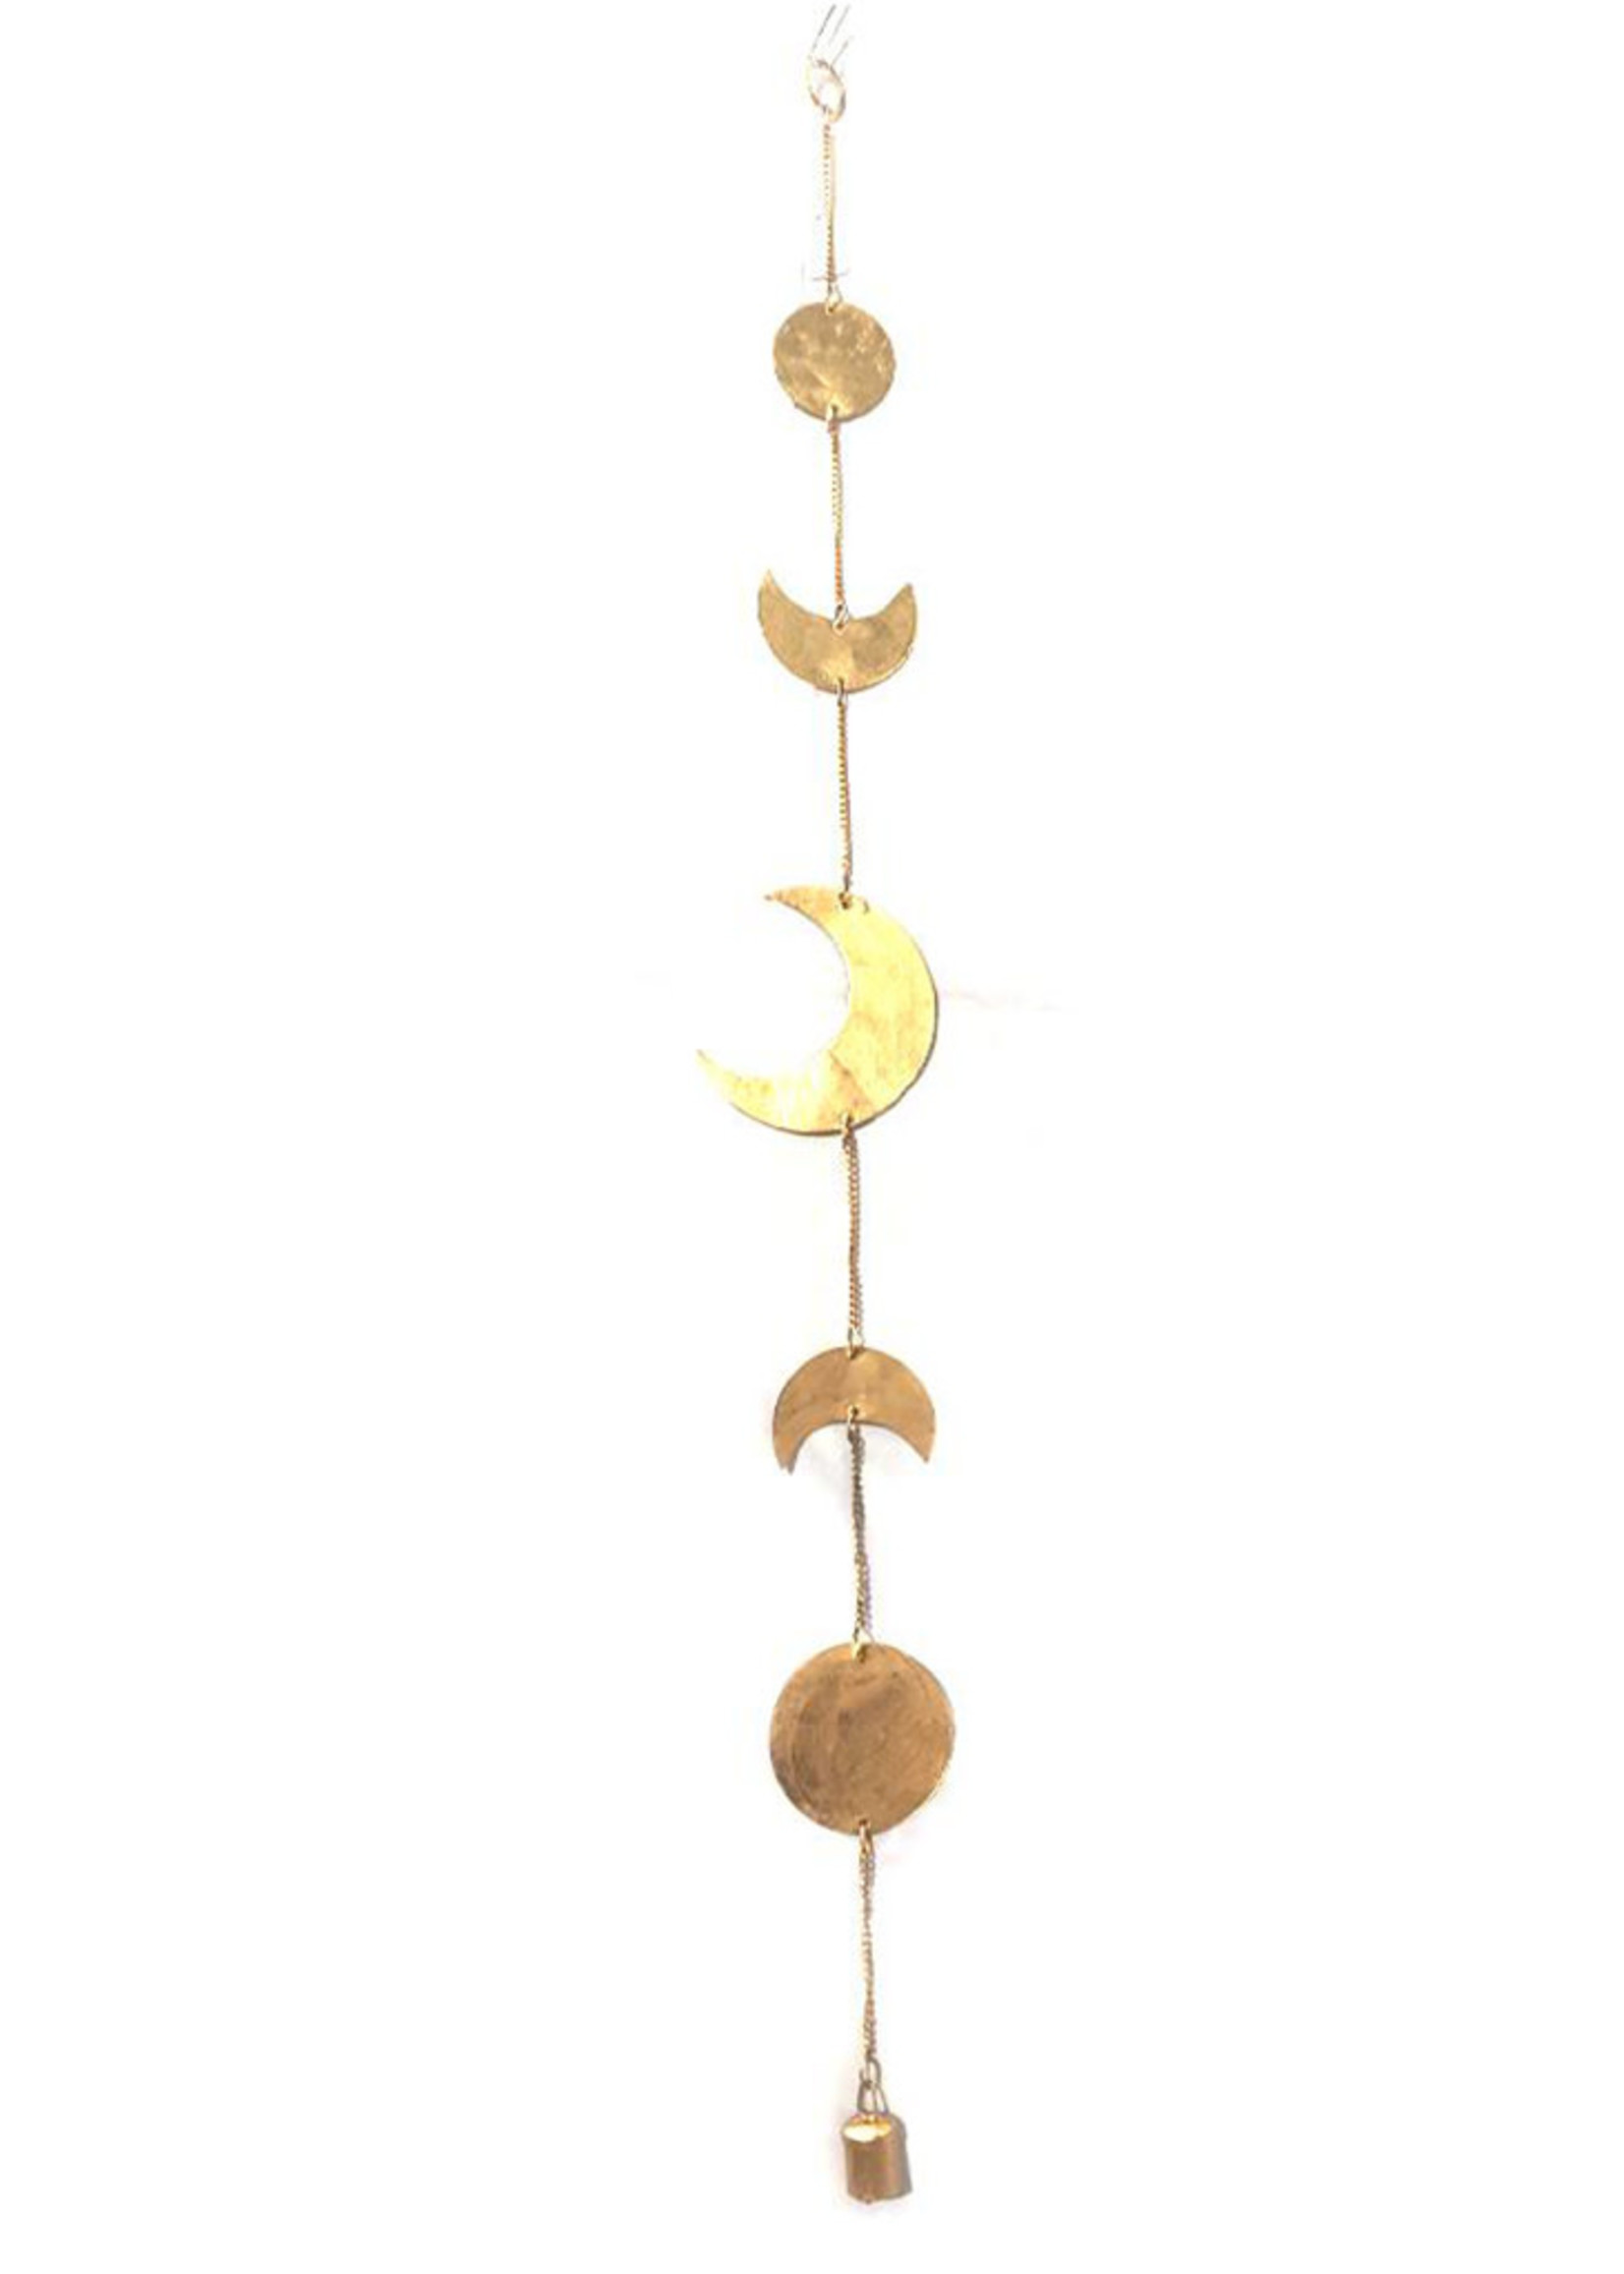 Gold Moon Phase Chime